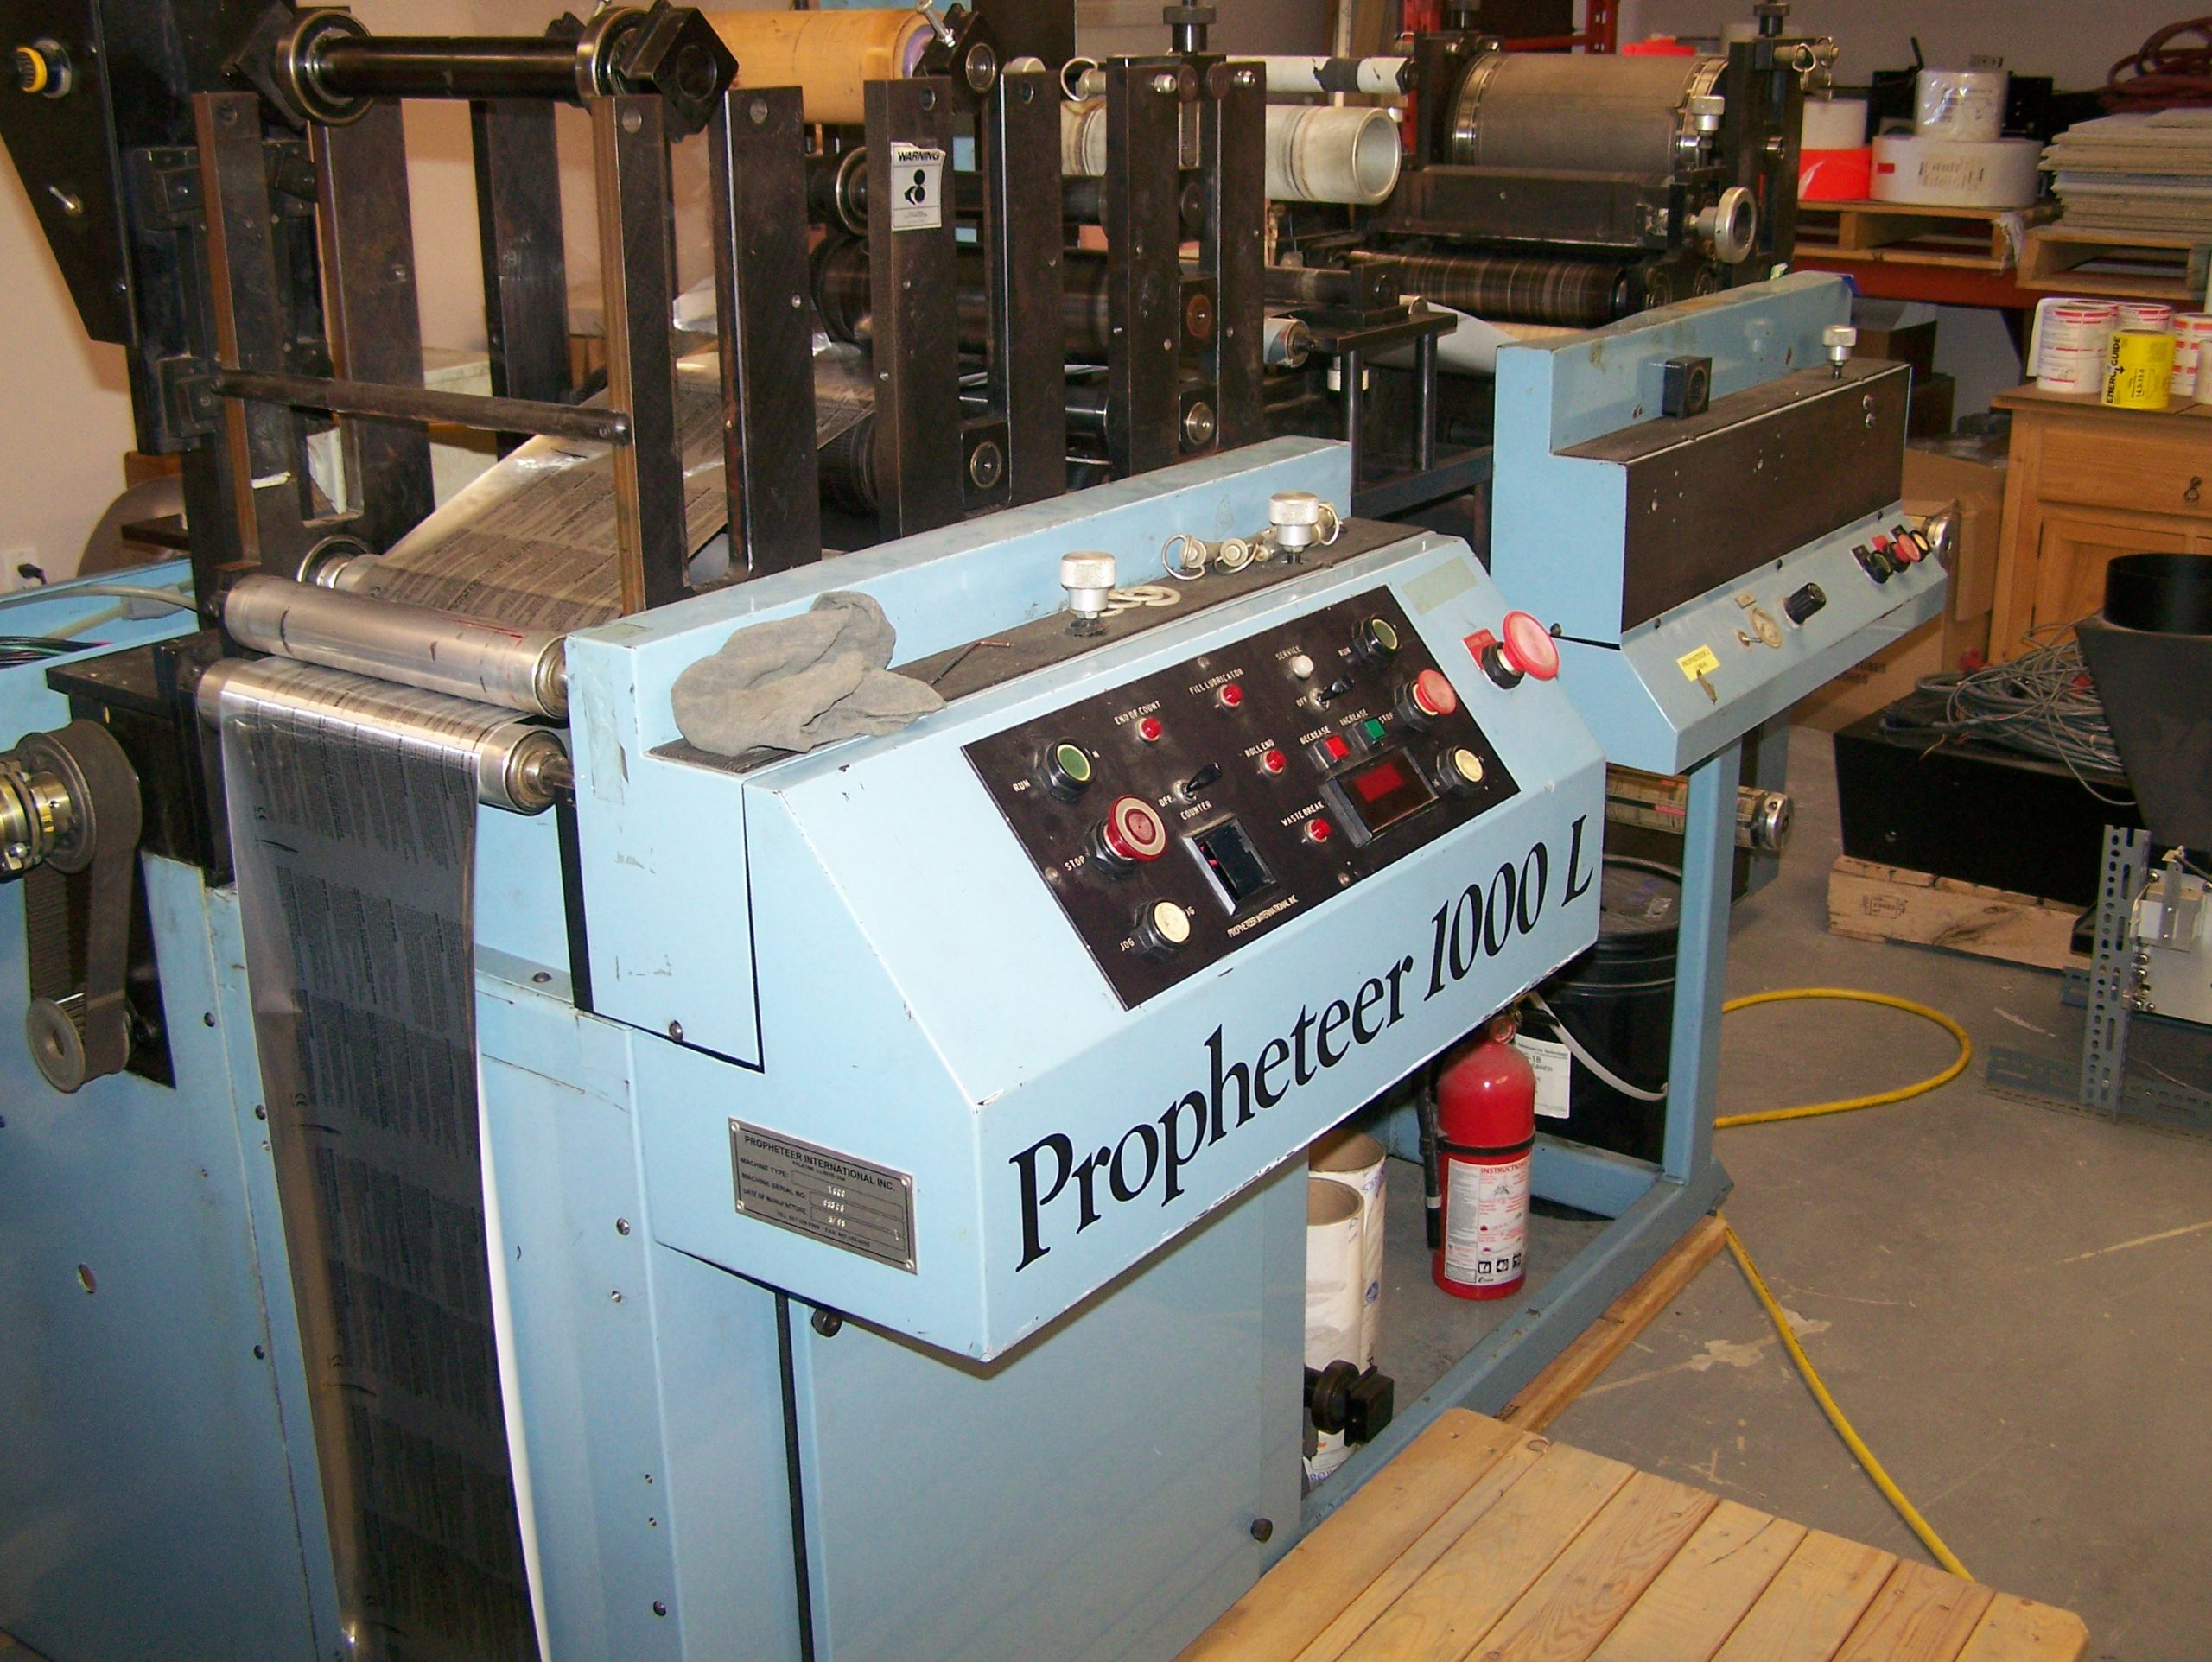 Propheteer 1000L - Used Flexo Printing Presses and Used Flexographic Equipment-4